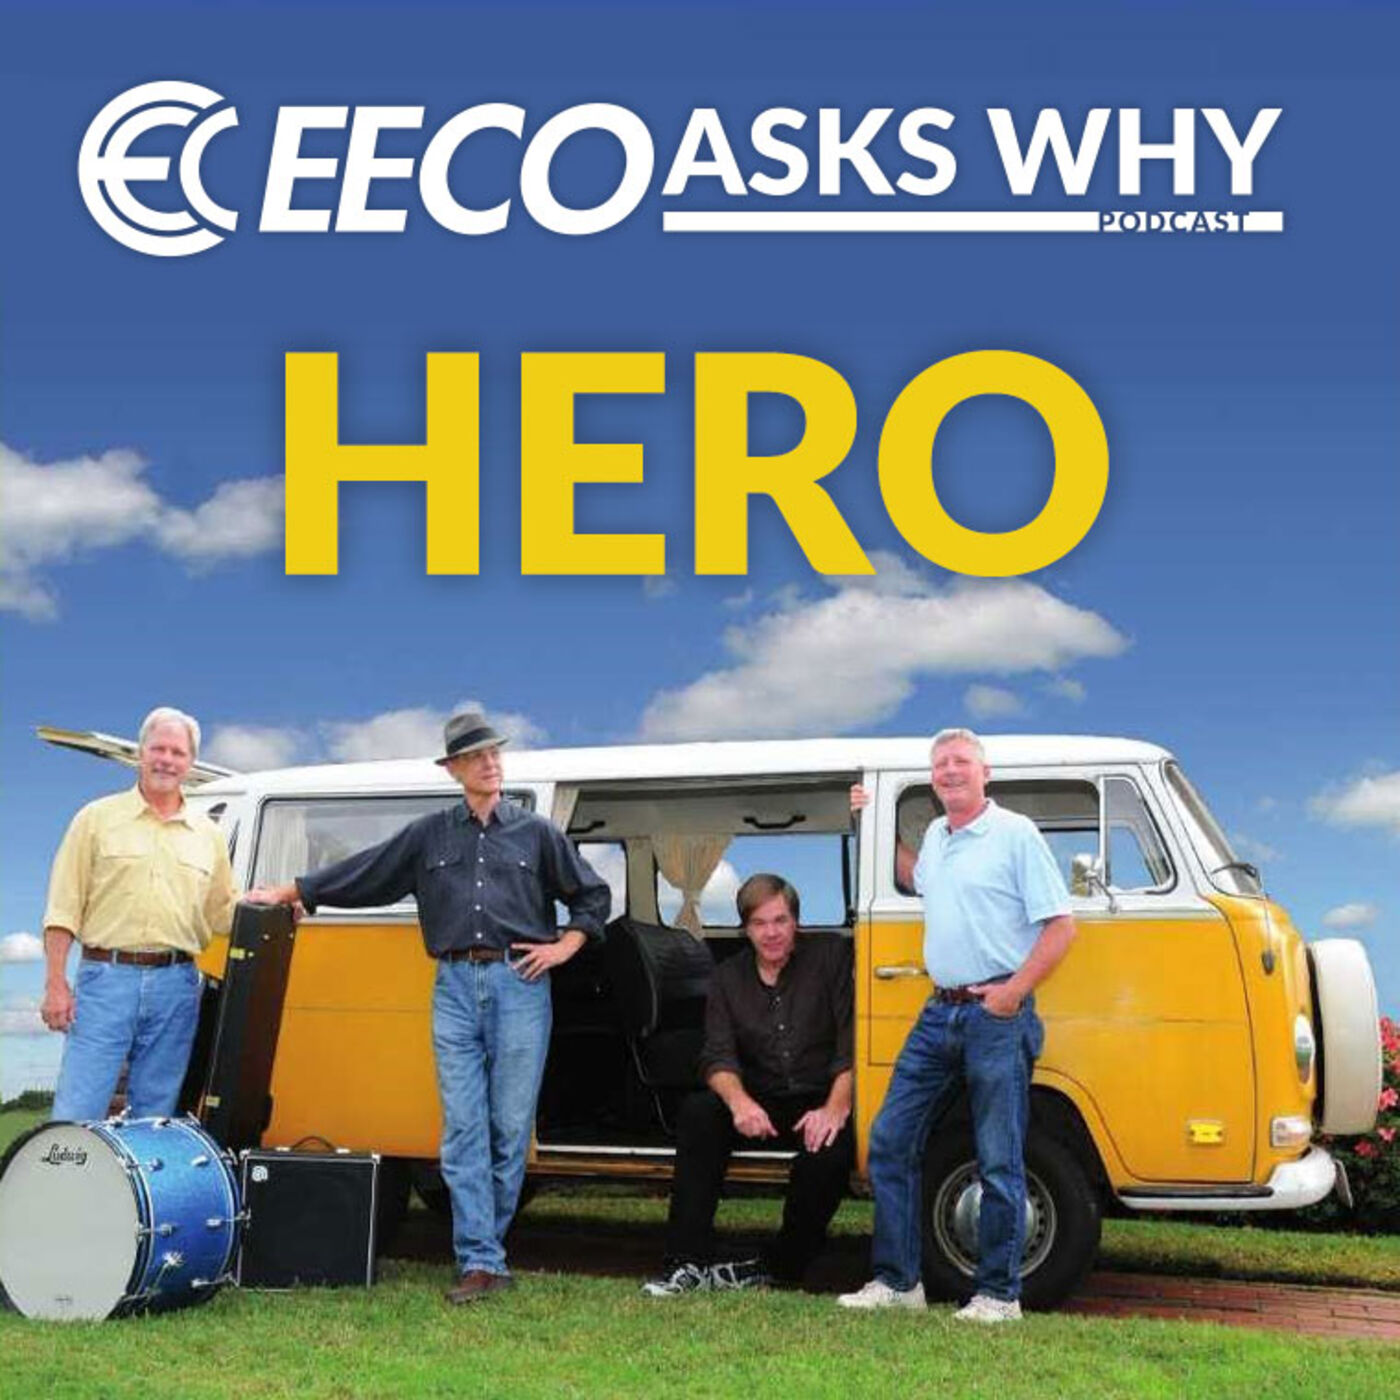 065. Hero - Jack Lawson, Board Member and former President/CEO at EECO